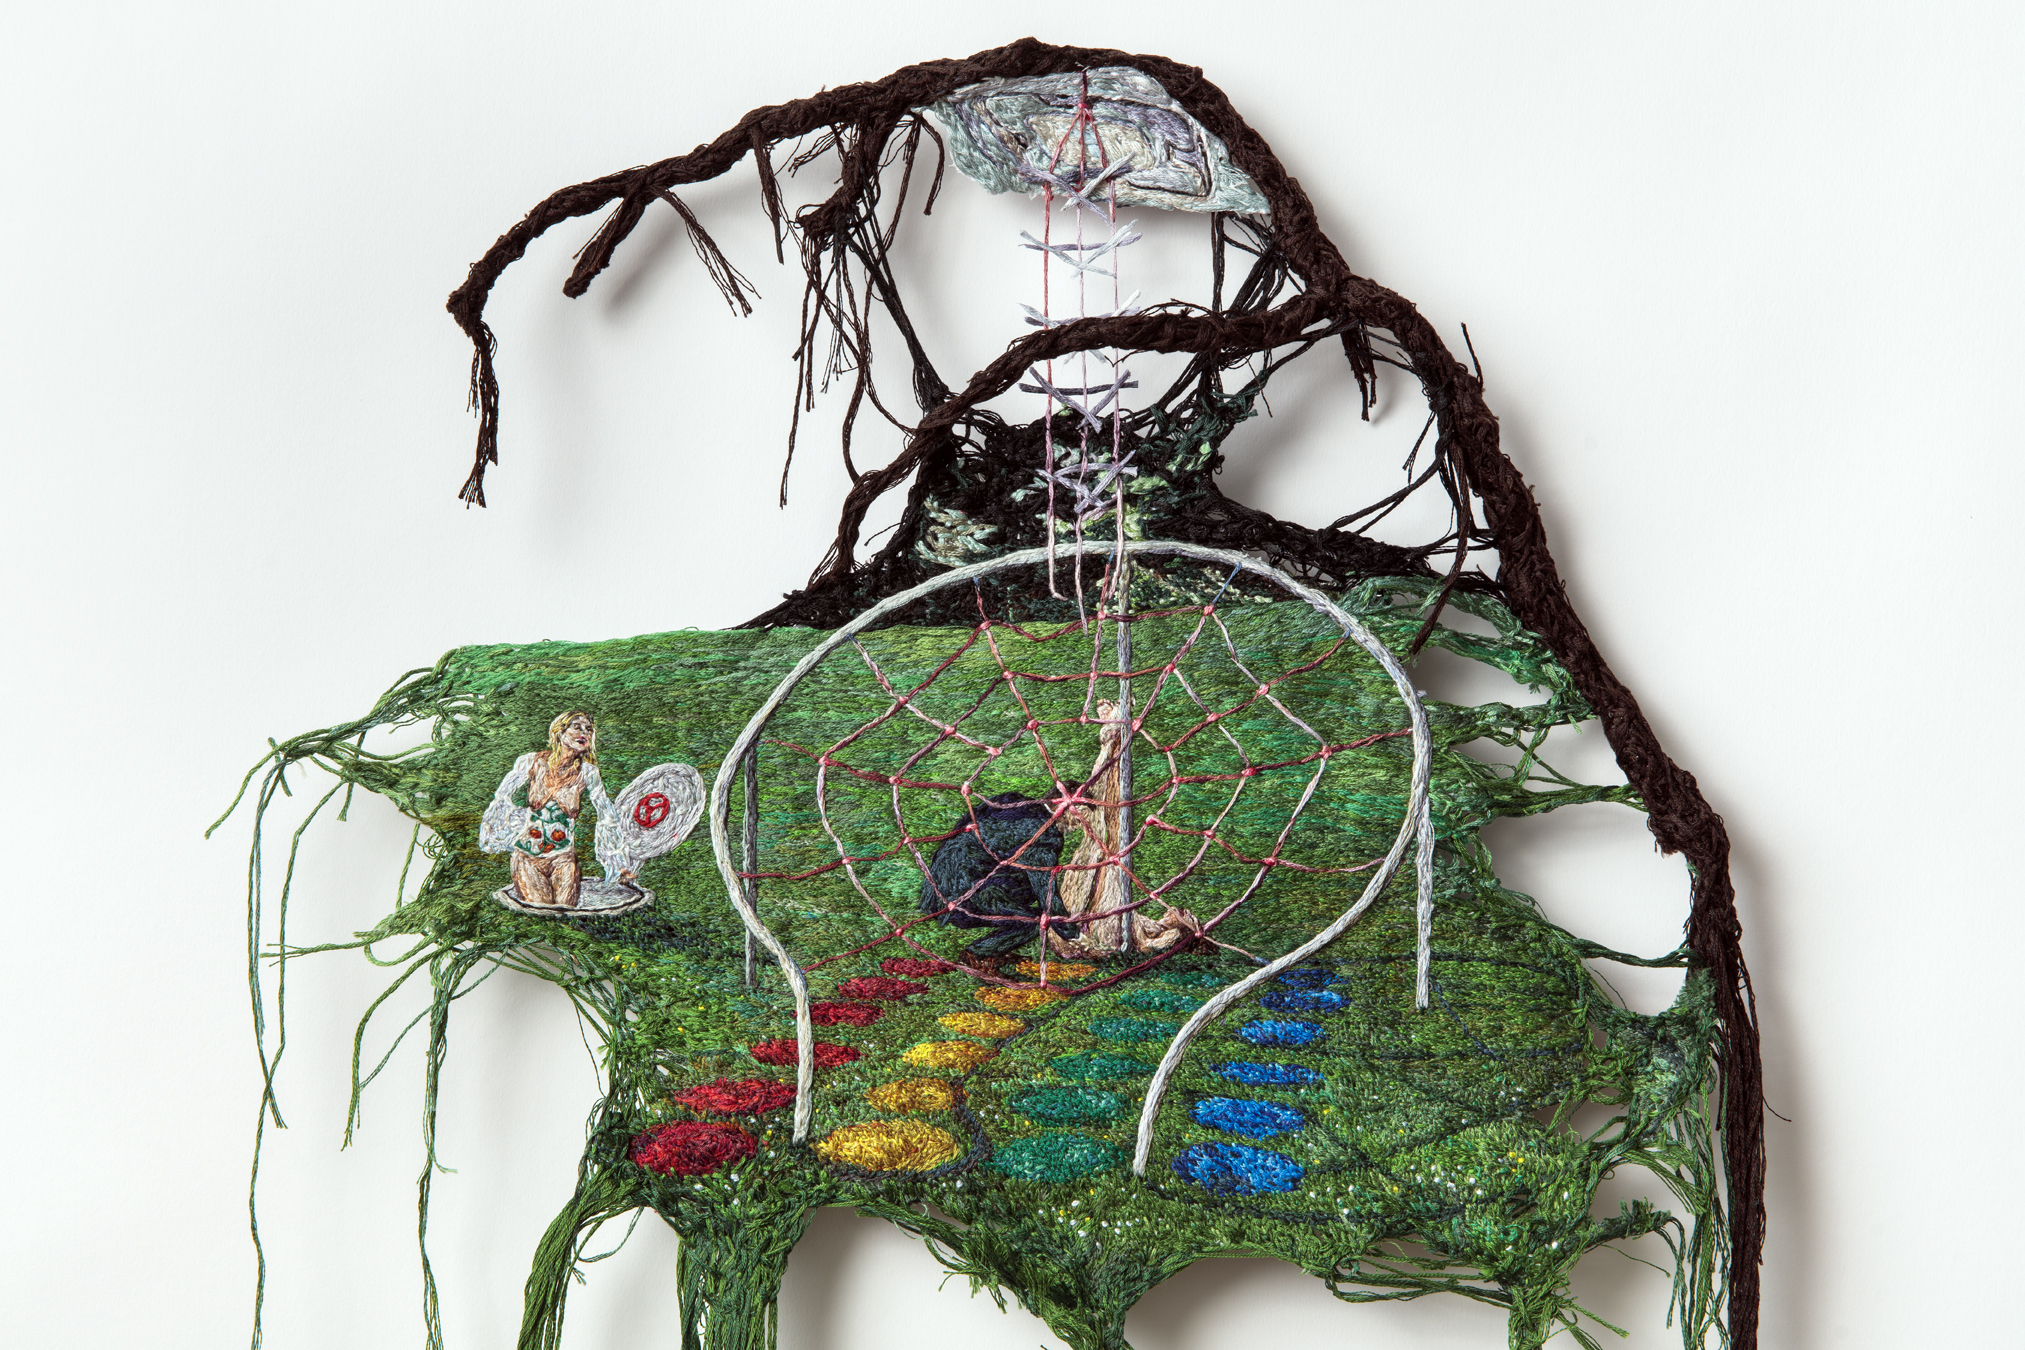 Ask Again , 2018, Embroidery Thread, Fabric, Aluminum, 16 x 33 in